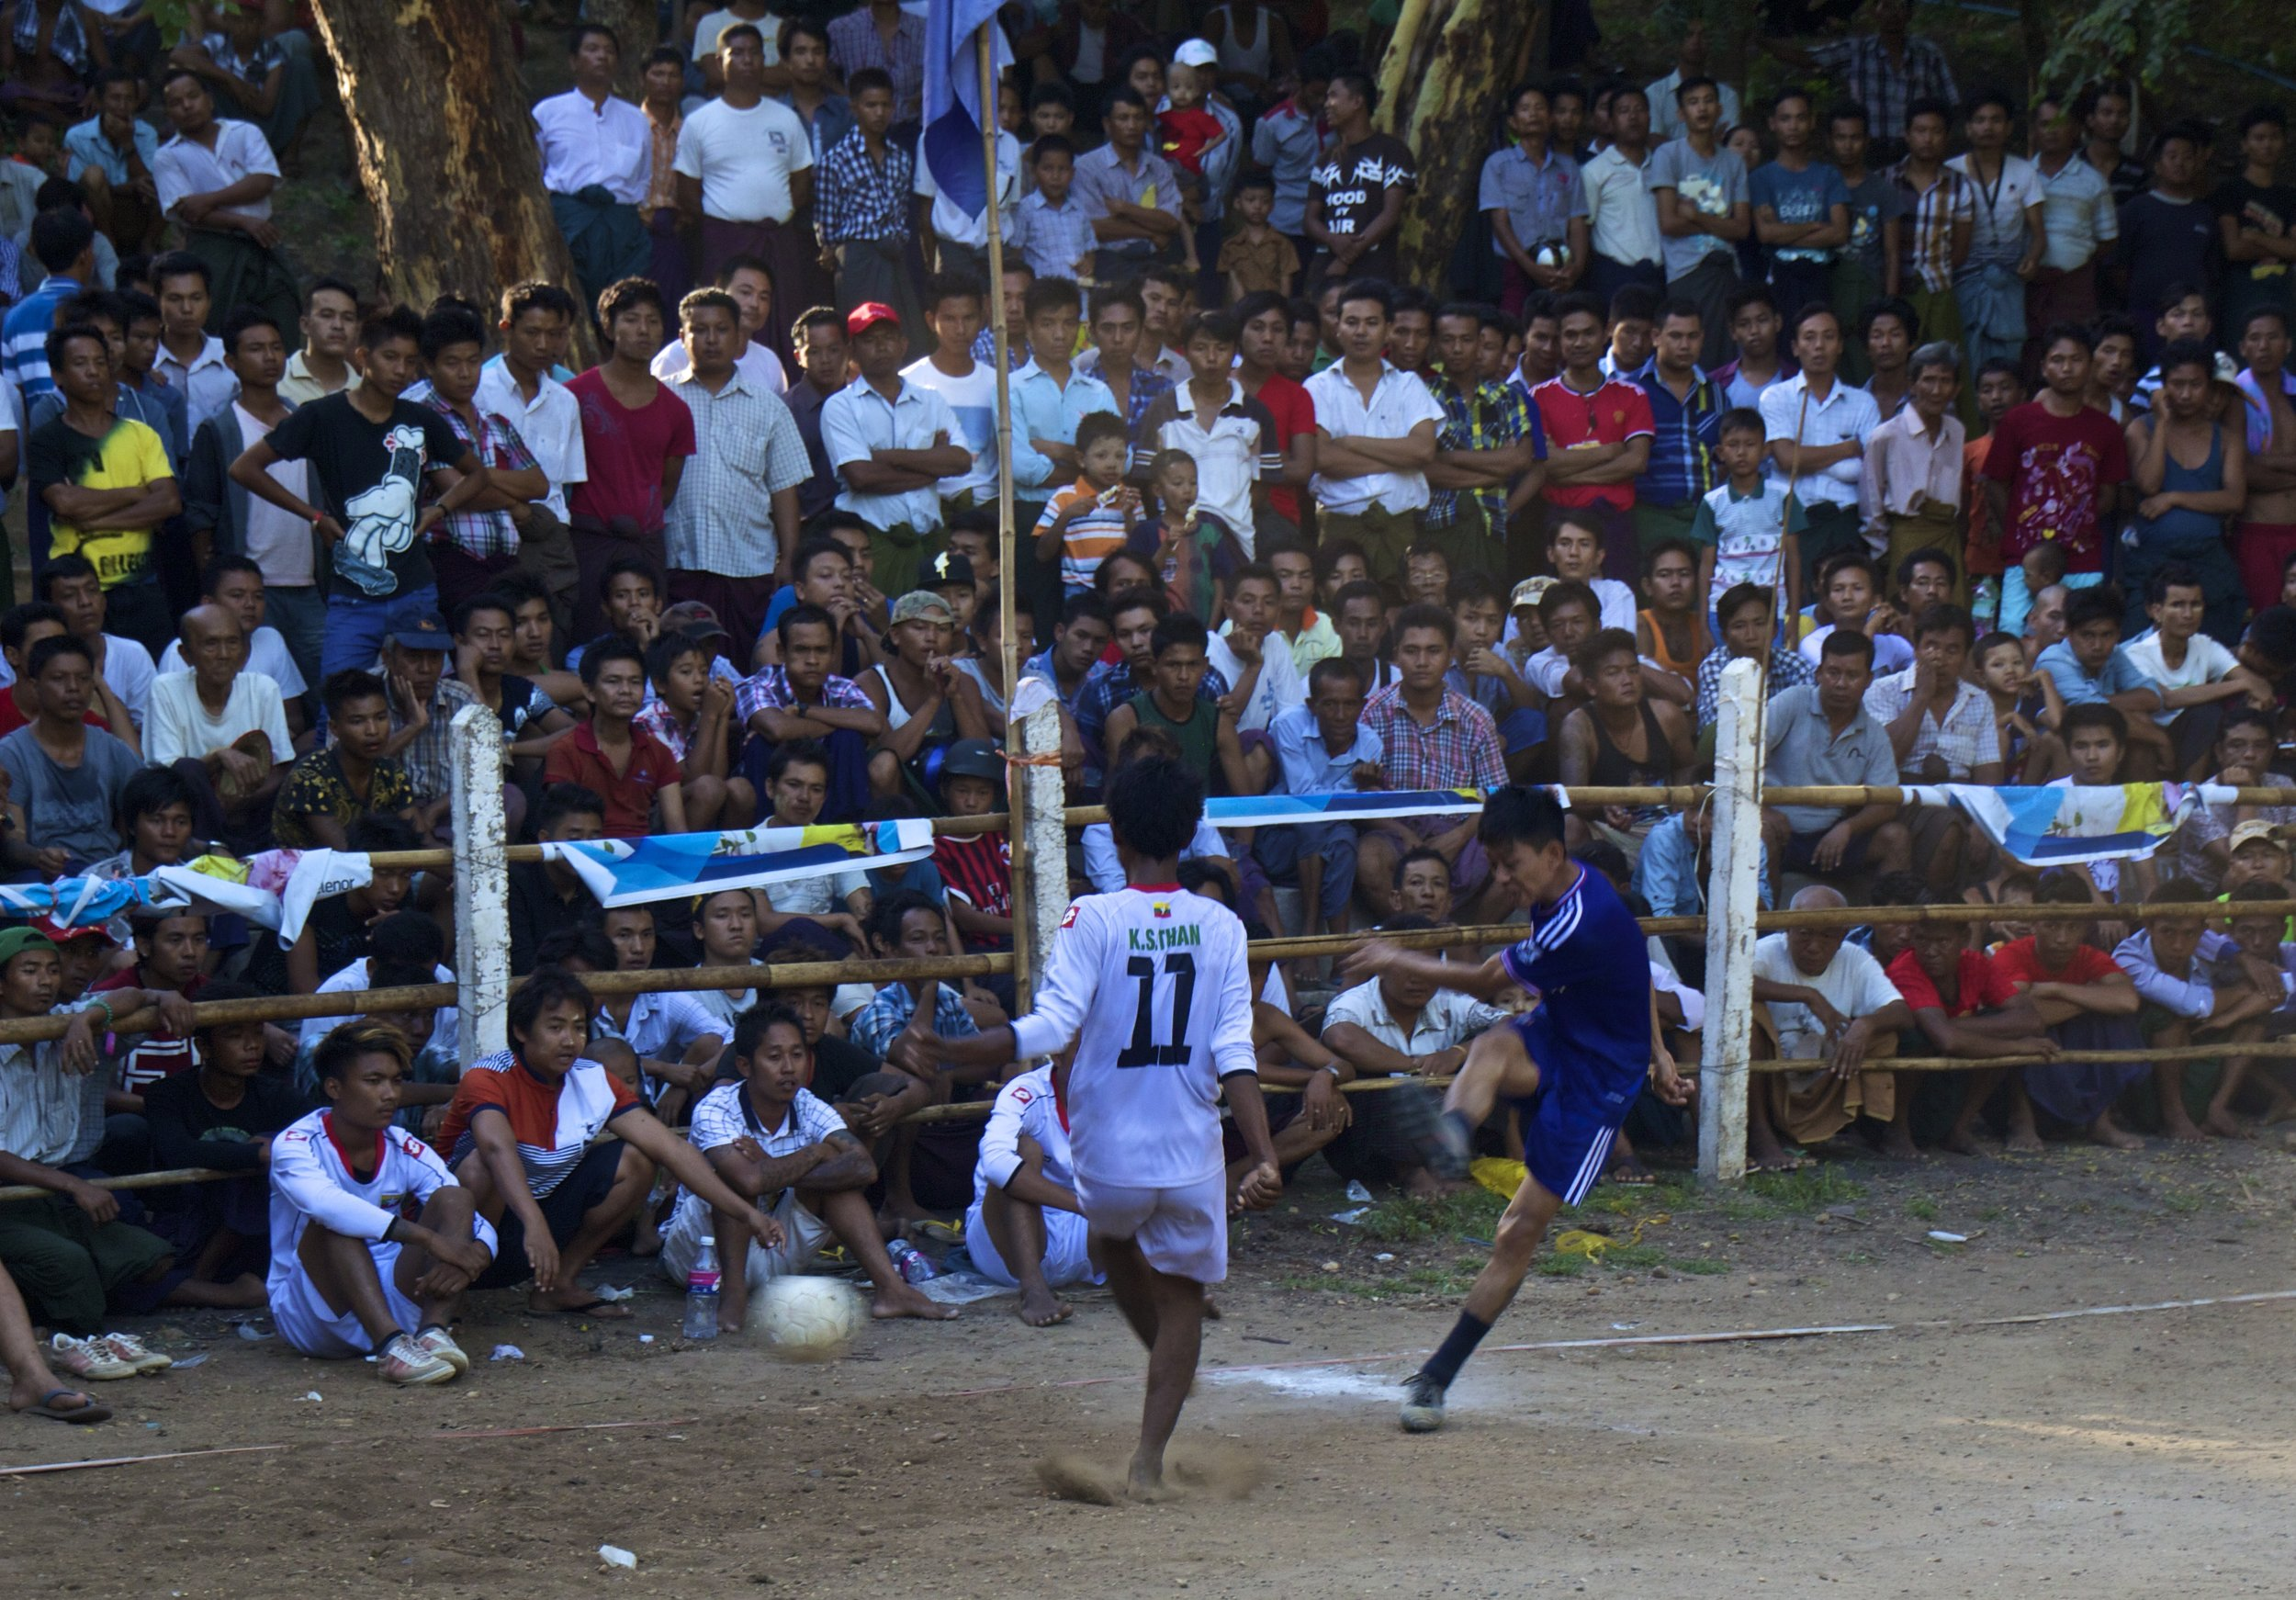 bagan burma football soccer match 8.jpg